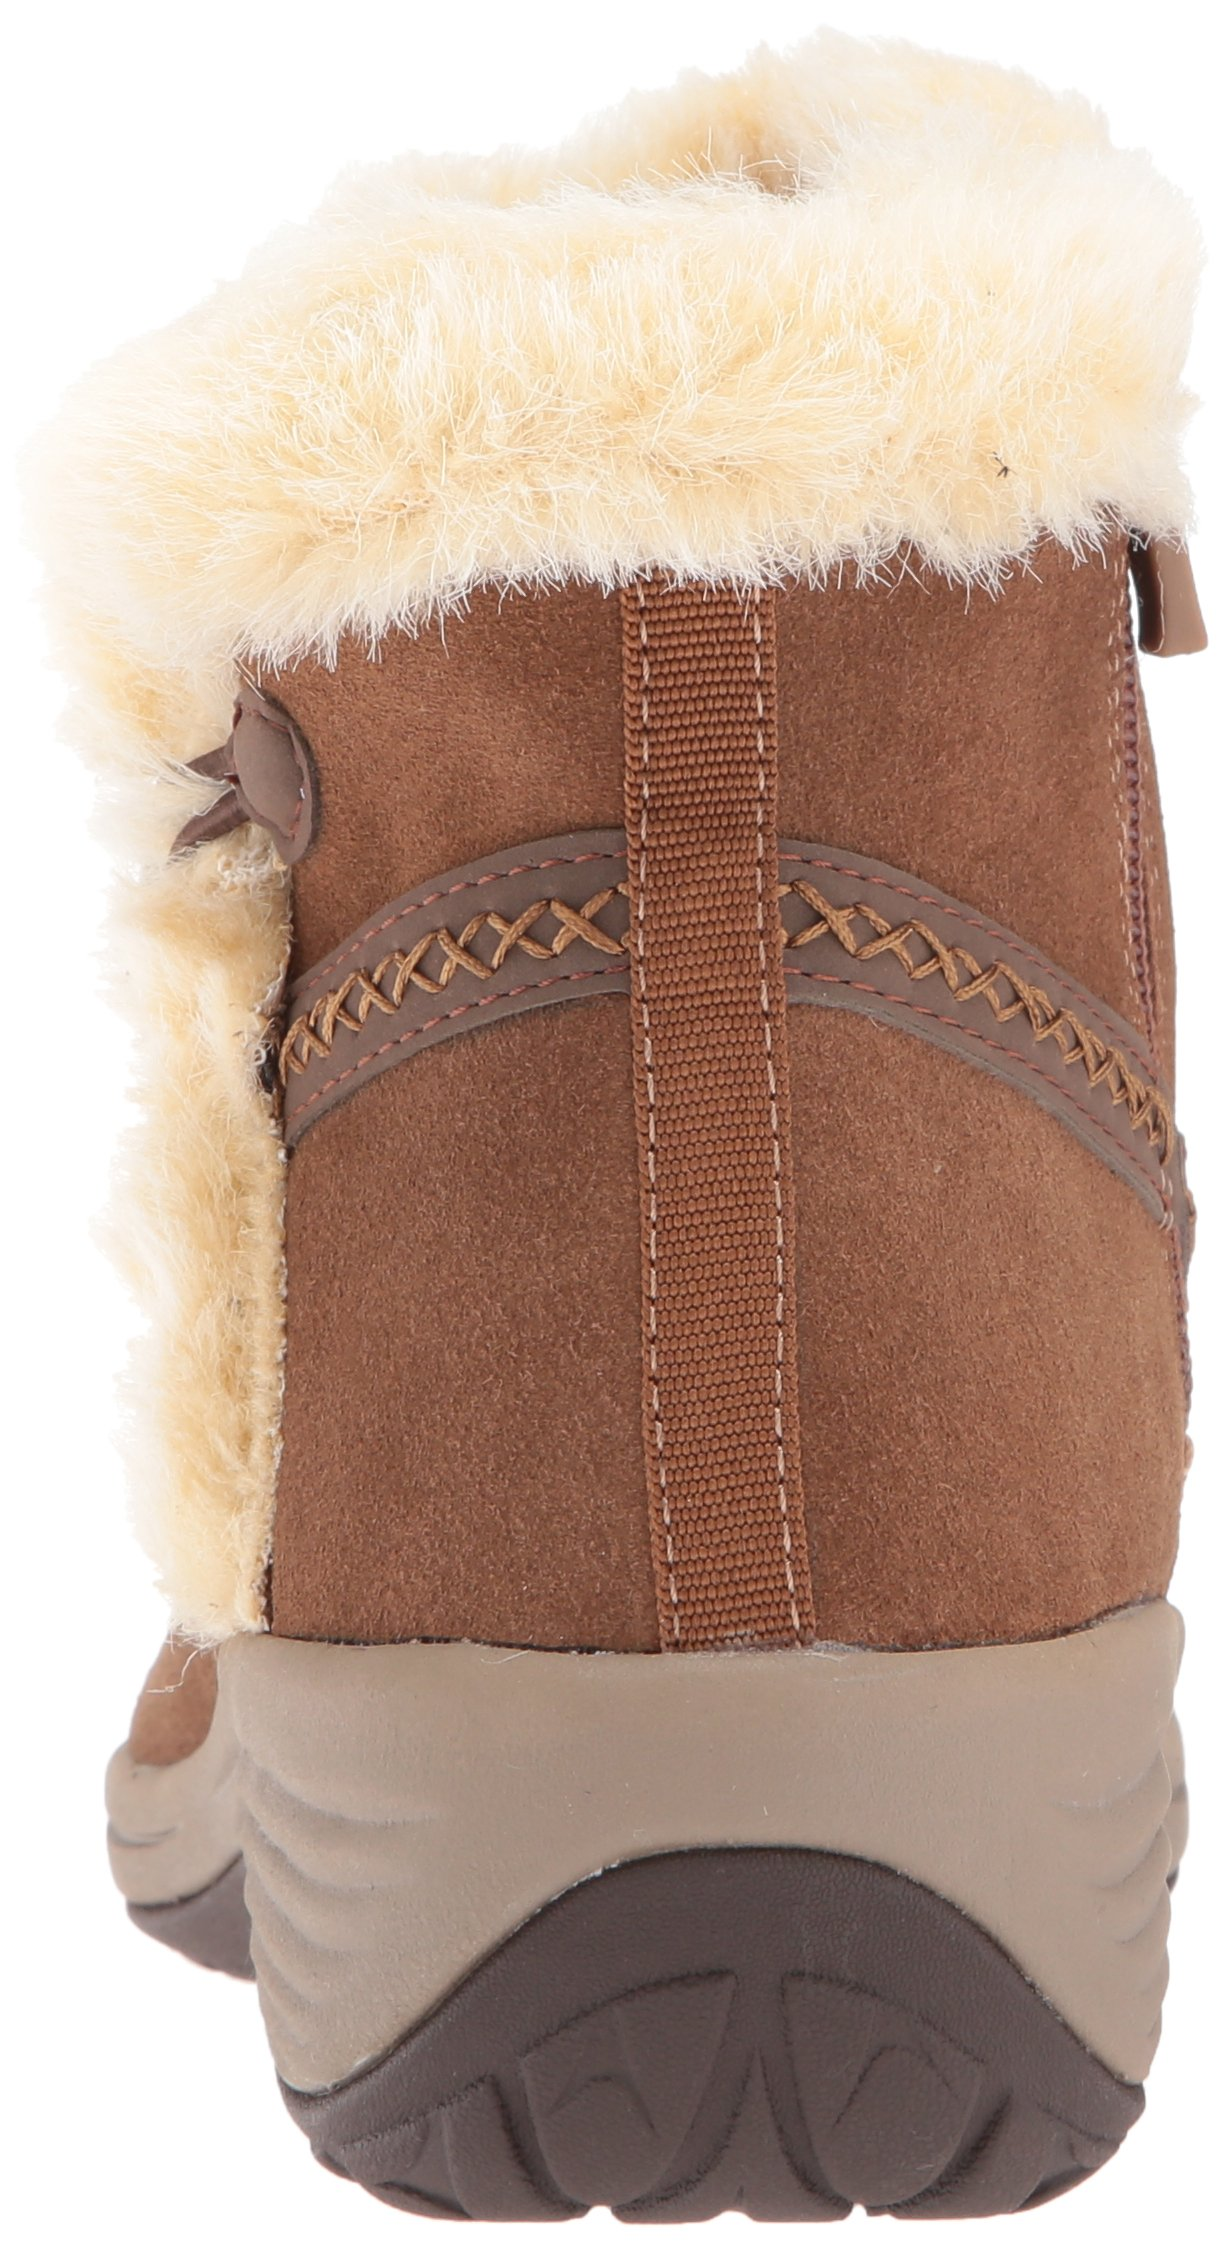 Easy Spirit Women's Icerink Ankle Bootie, Dark Natural Multi Suede, 6 W US by Easy Spirit (Image #2)